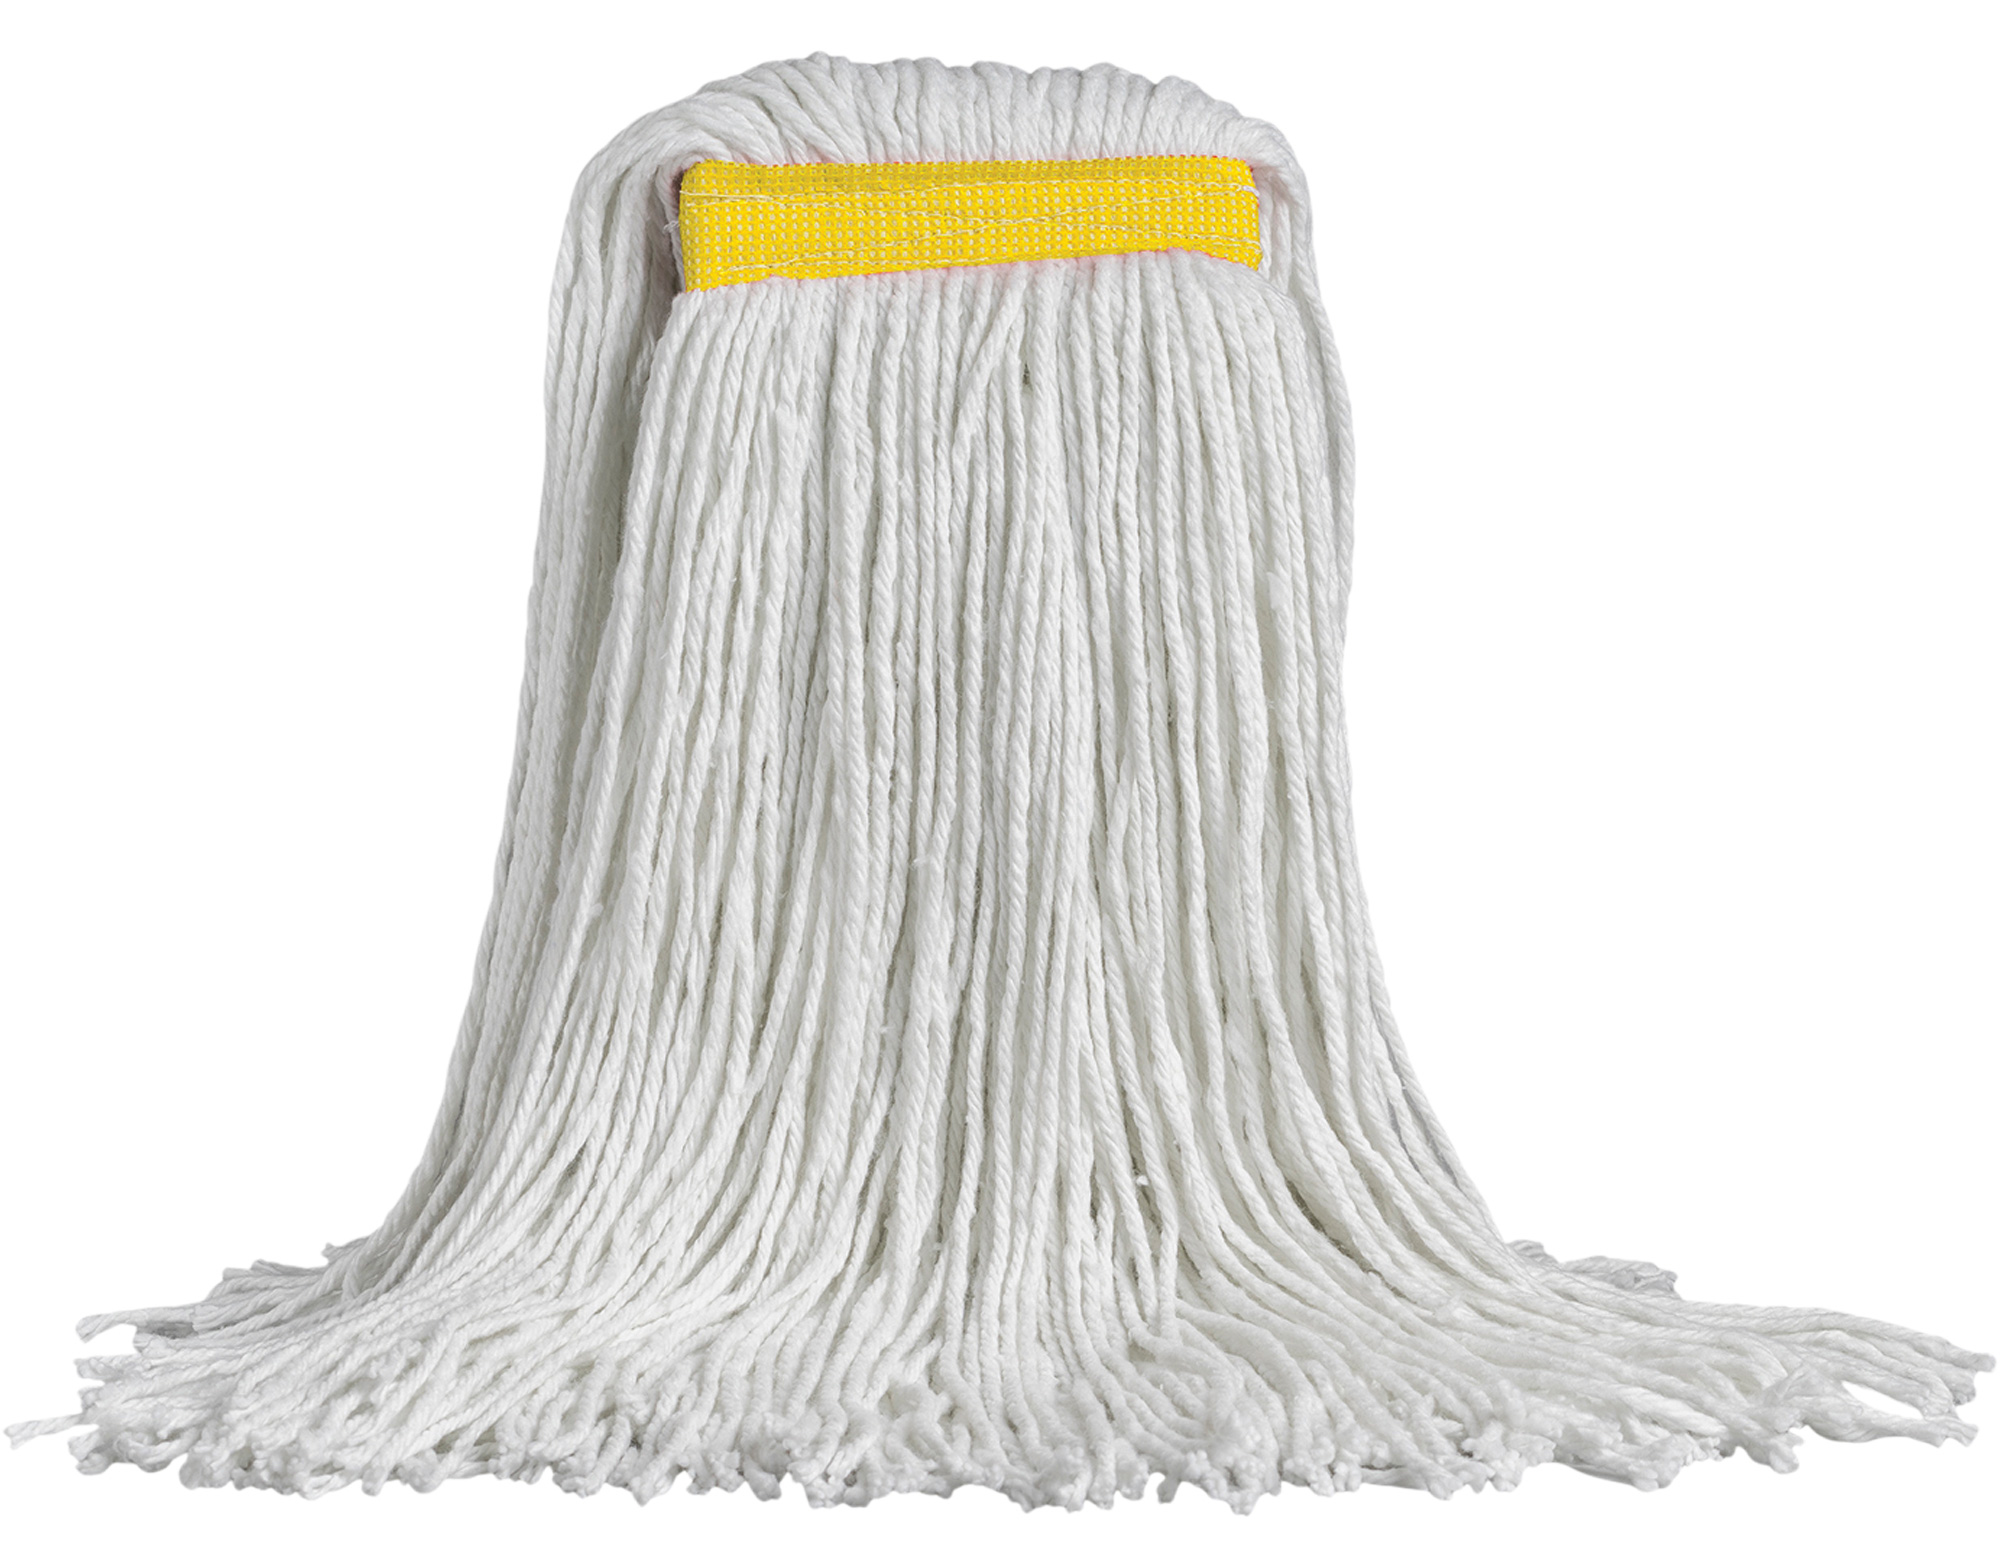 Synray™ Cut End Narrow Band Mop Head 24oz/650g